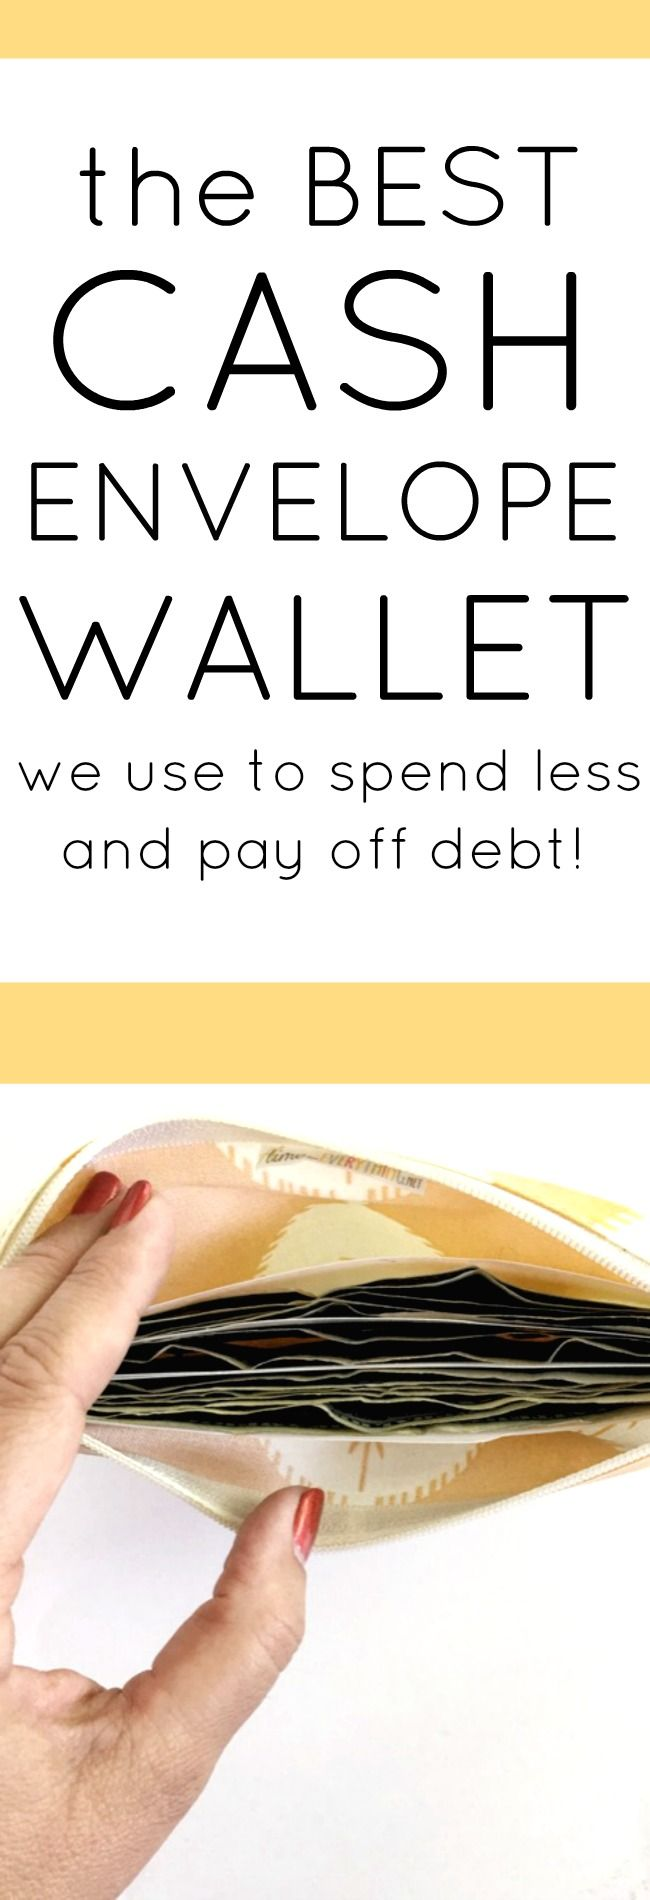 Do you need to save money this year? Do you have debt you'd love to pay off quickly? Using a cash envelope system is an excellent way to cut spending and pay off debt quickly. Check out our tutorial for beginners, full of our best tips and tricks. Plus we are spilling the beans on our FAVORITE cash envelope wallet!